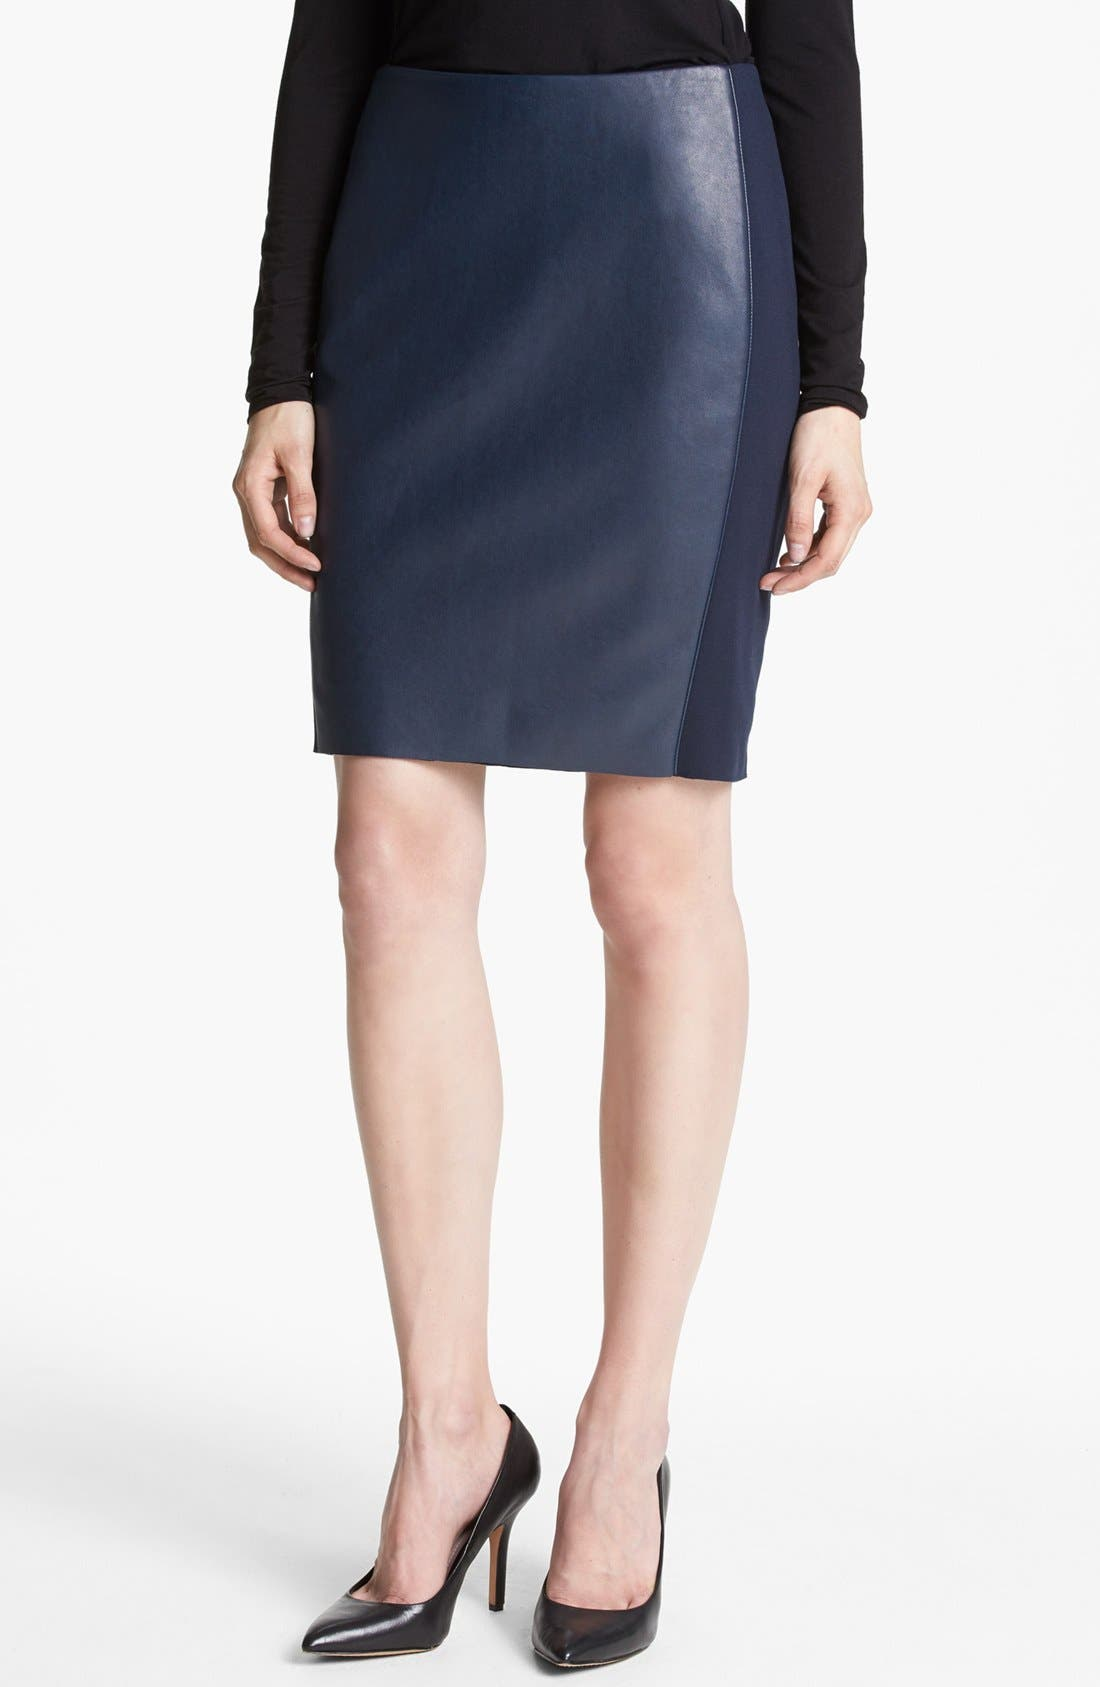 BAILEY 44 'She Walk in Beauty' Faux Leather Pencil Skirt, Main, color, 410